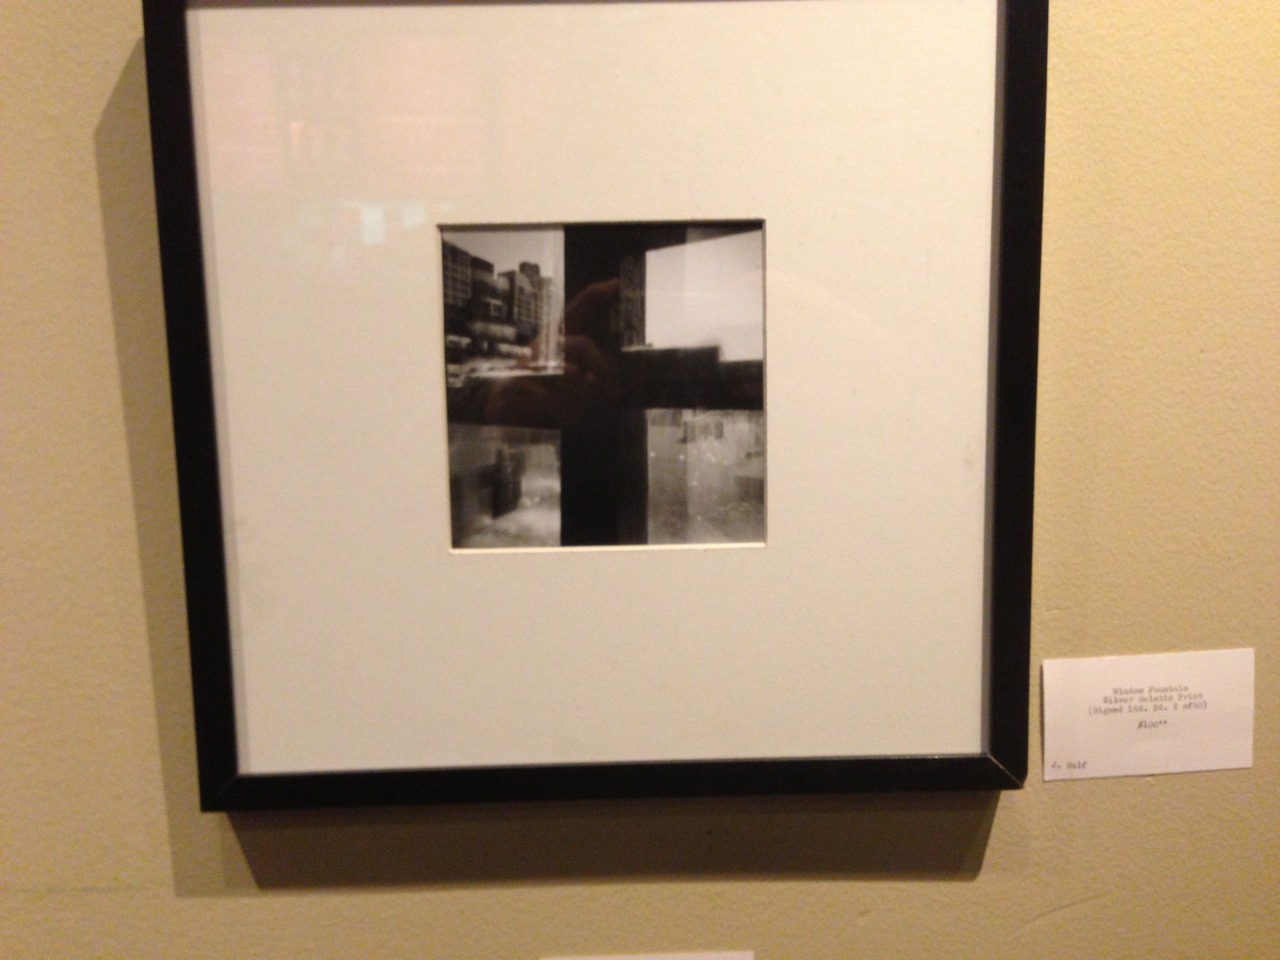 A guy is selling his Instagrams in Starbucks for $100 a pop. Lol.